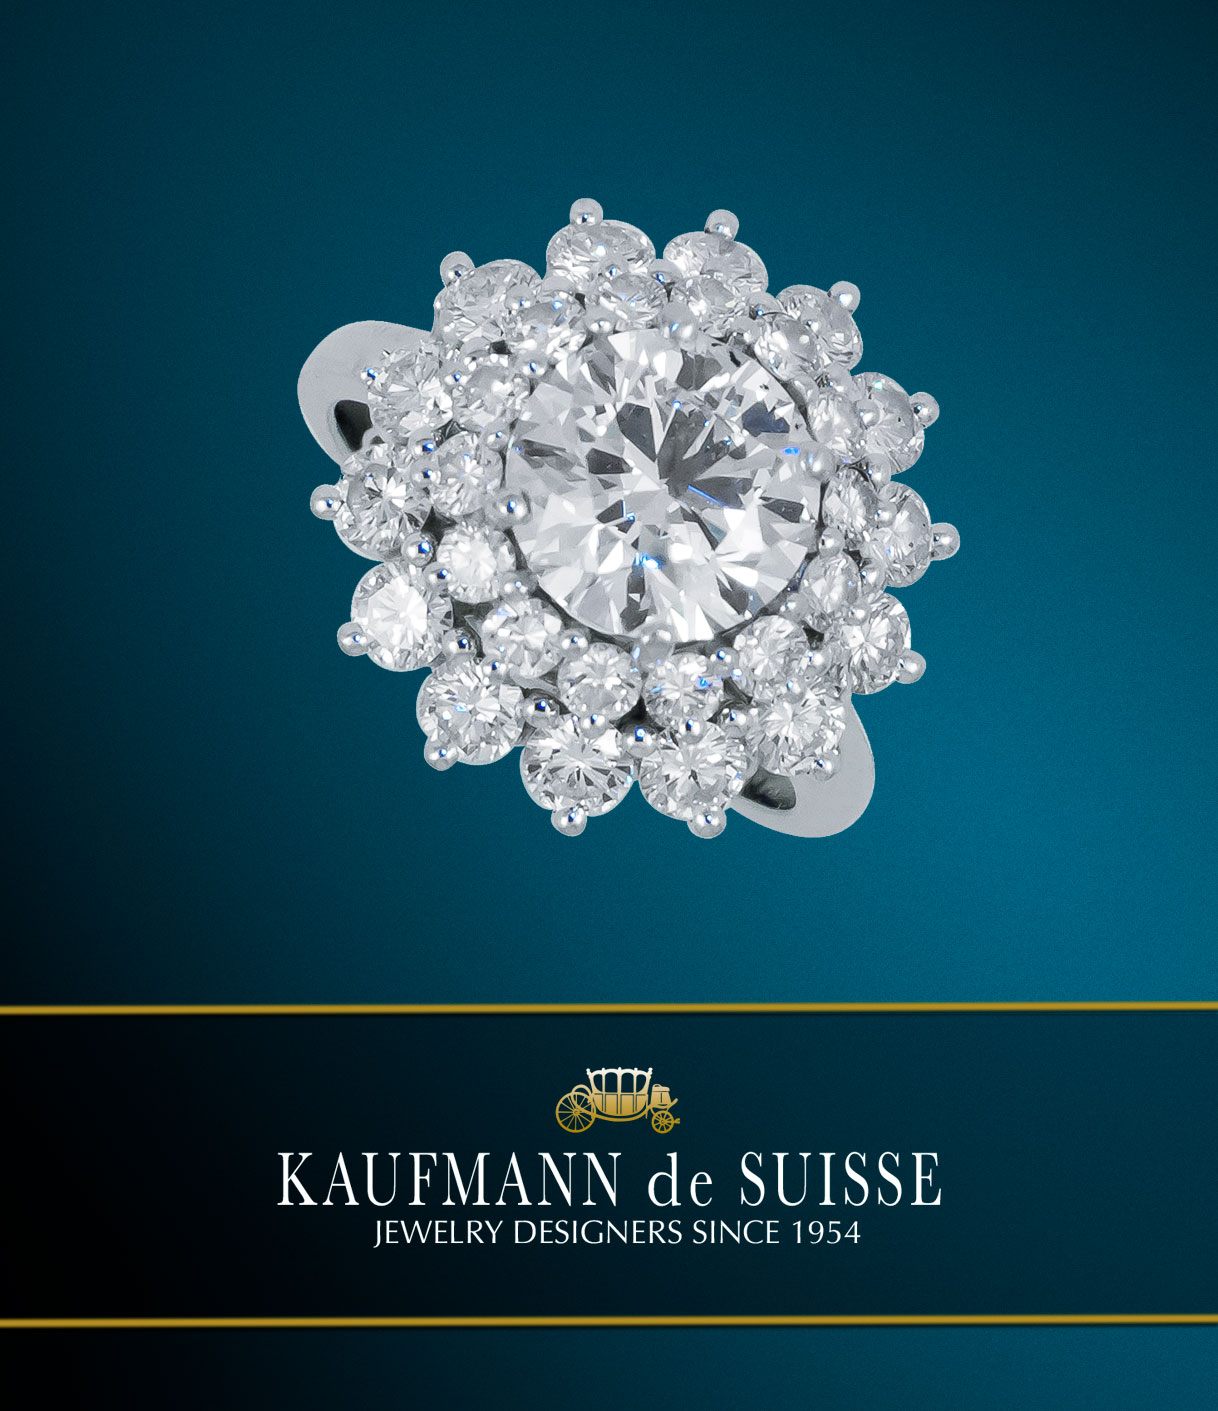 Diamond Ring at Kaufmann de Suisse Jewelers